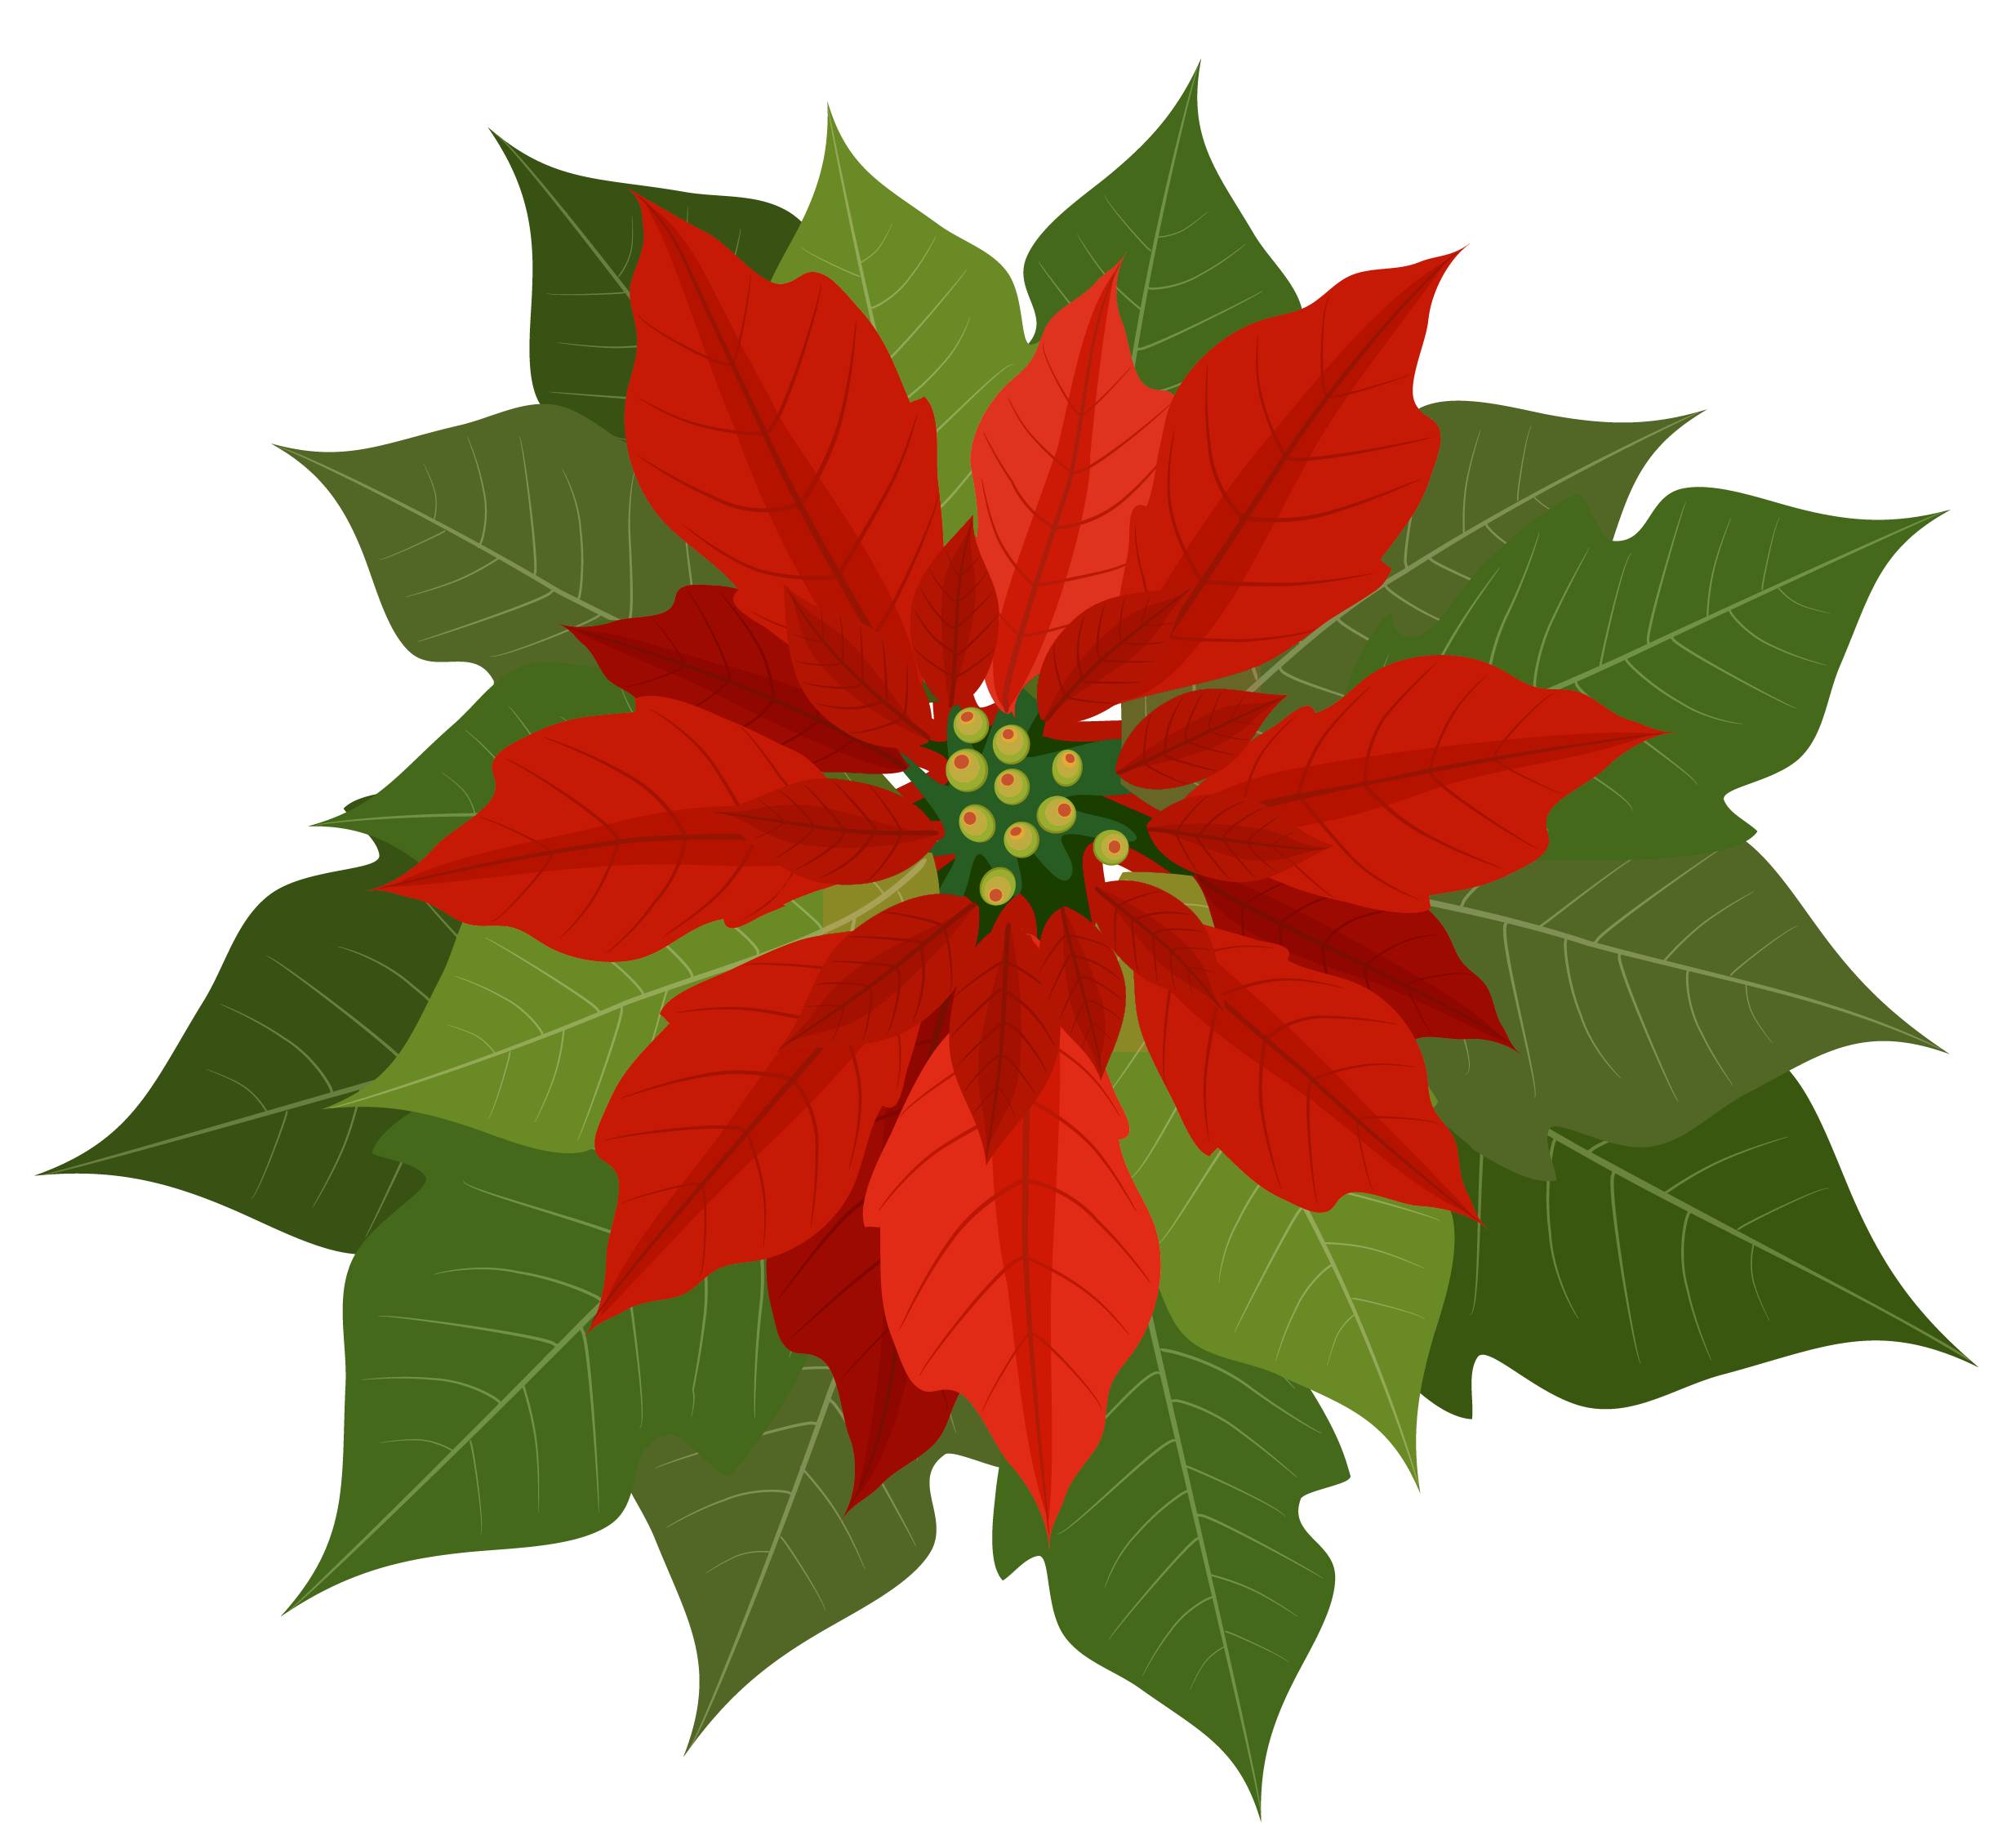 Poinsettia clipart transparent background. Christmas png gallery yopriceville